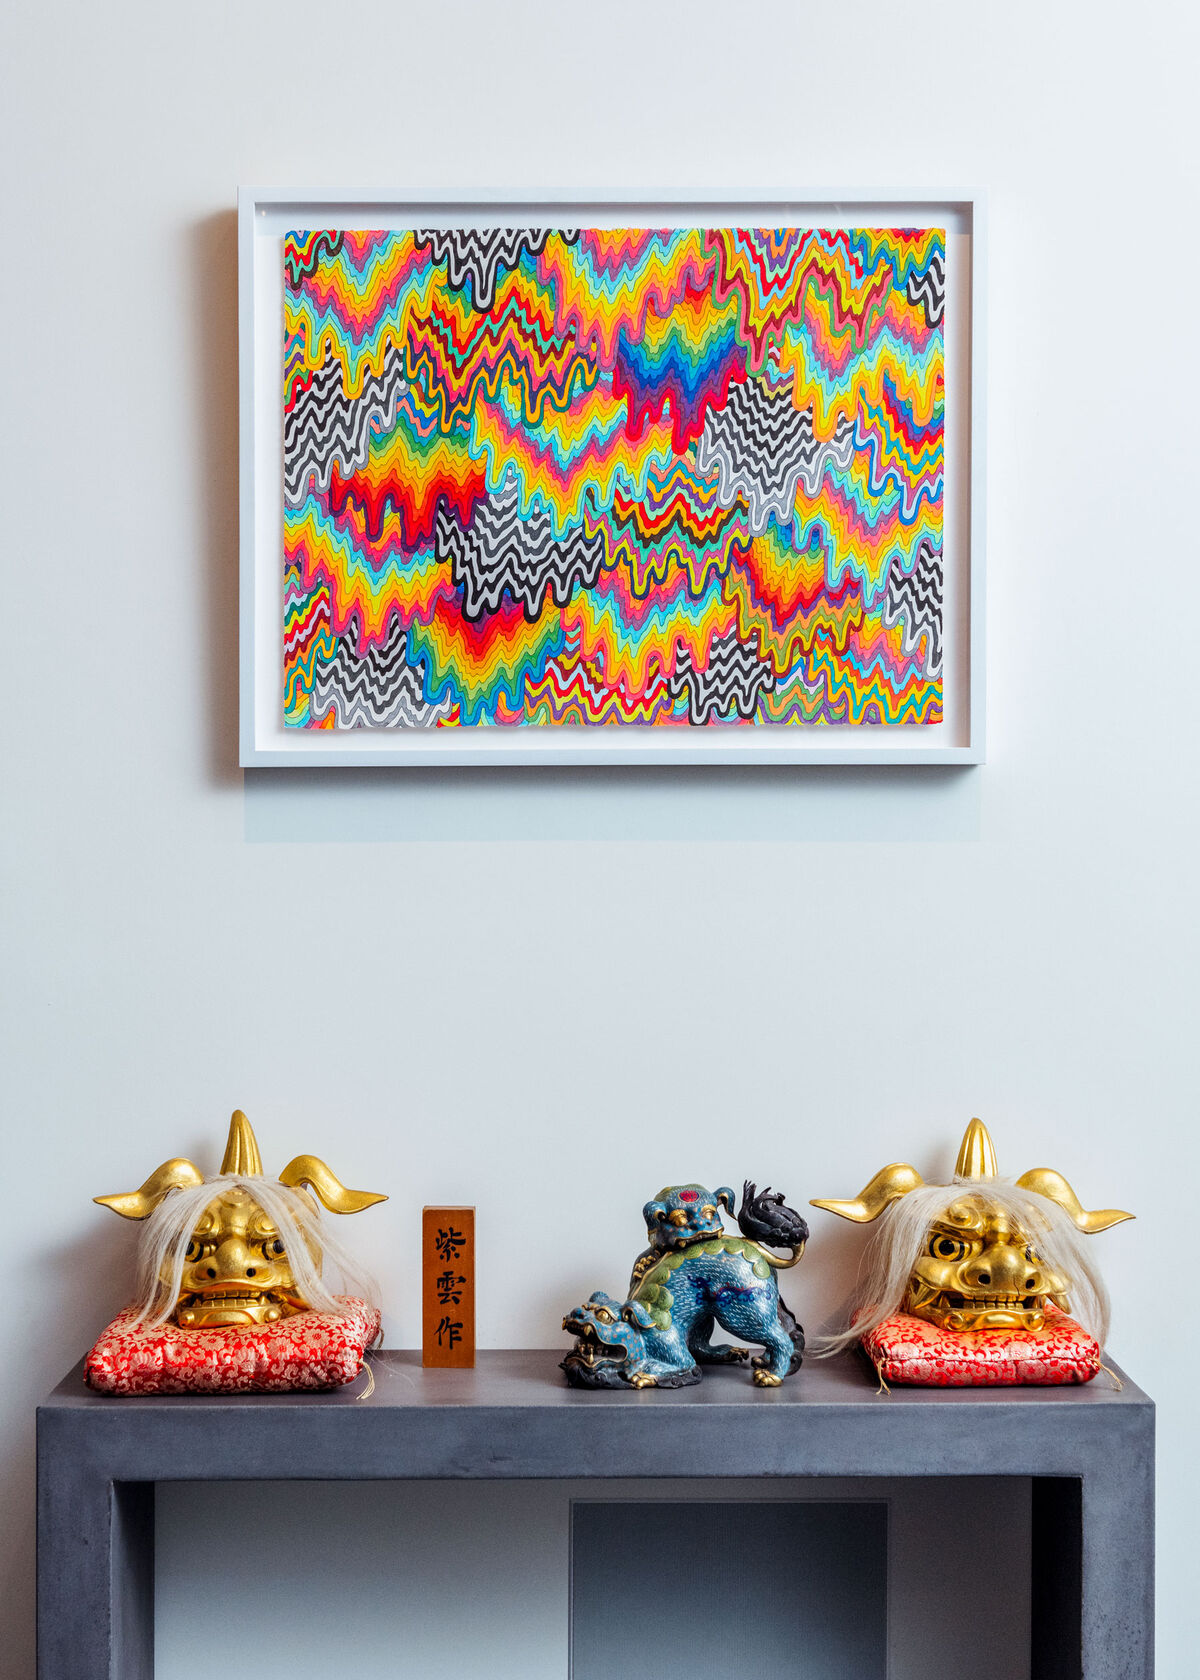 An artwork by Jen Stark hangs above a selection of sculptures. Photo by Brian Guido for Artsy.